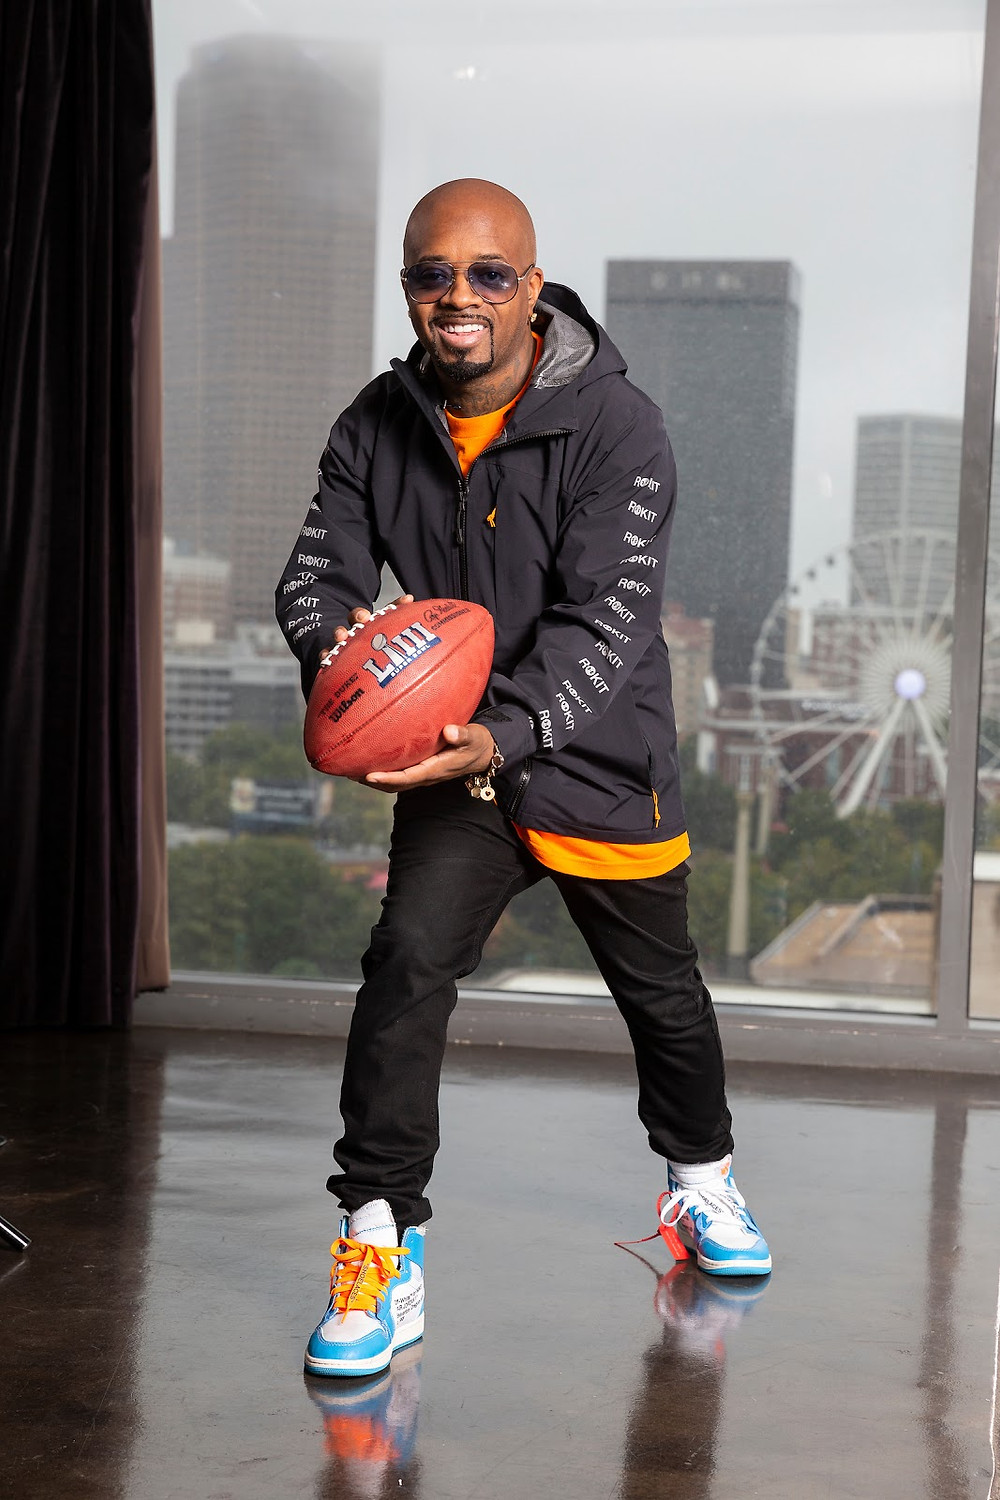 Atlanta Super Bowl Host Committee Announces Super Bowl Live and Jermaine Dupri as the Event's Music Producer